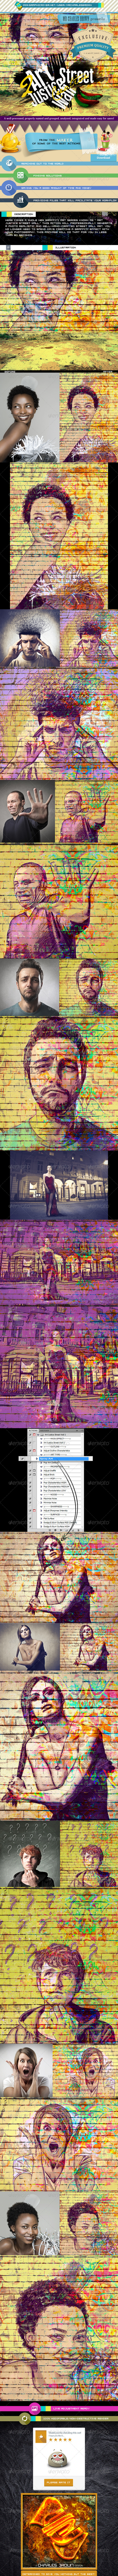 GraphicRiver Art Justice Street Wall 2 Urban Street of Paris 8340561